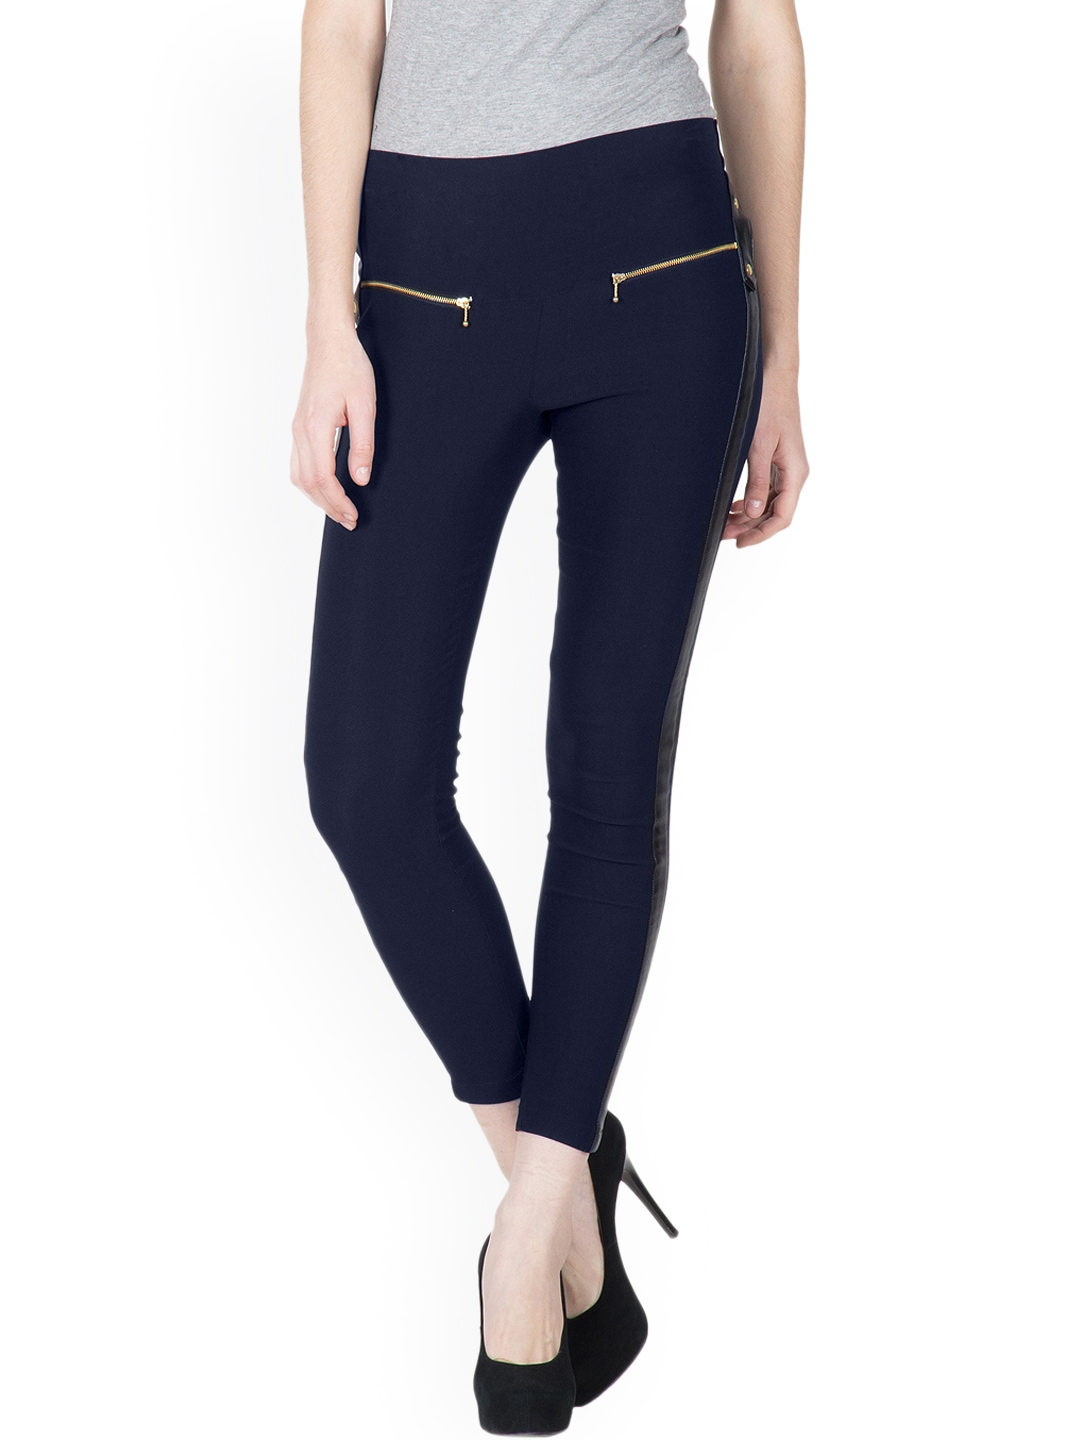 Shop for trendy, denim, colourful jeggings online for women in India at Myntra. Free Shipping 30 Day Returns COD available. Buy wide range of ladies jeggings, denim jeggings, cotton jeggings & stylish jeggings in lots of colours at best price at Myntra, the best online shopping site in India.